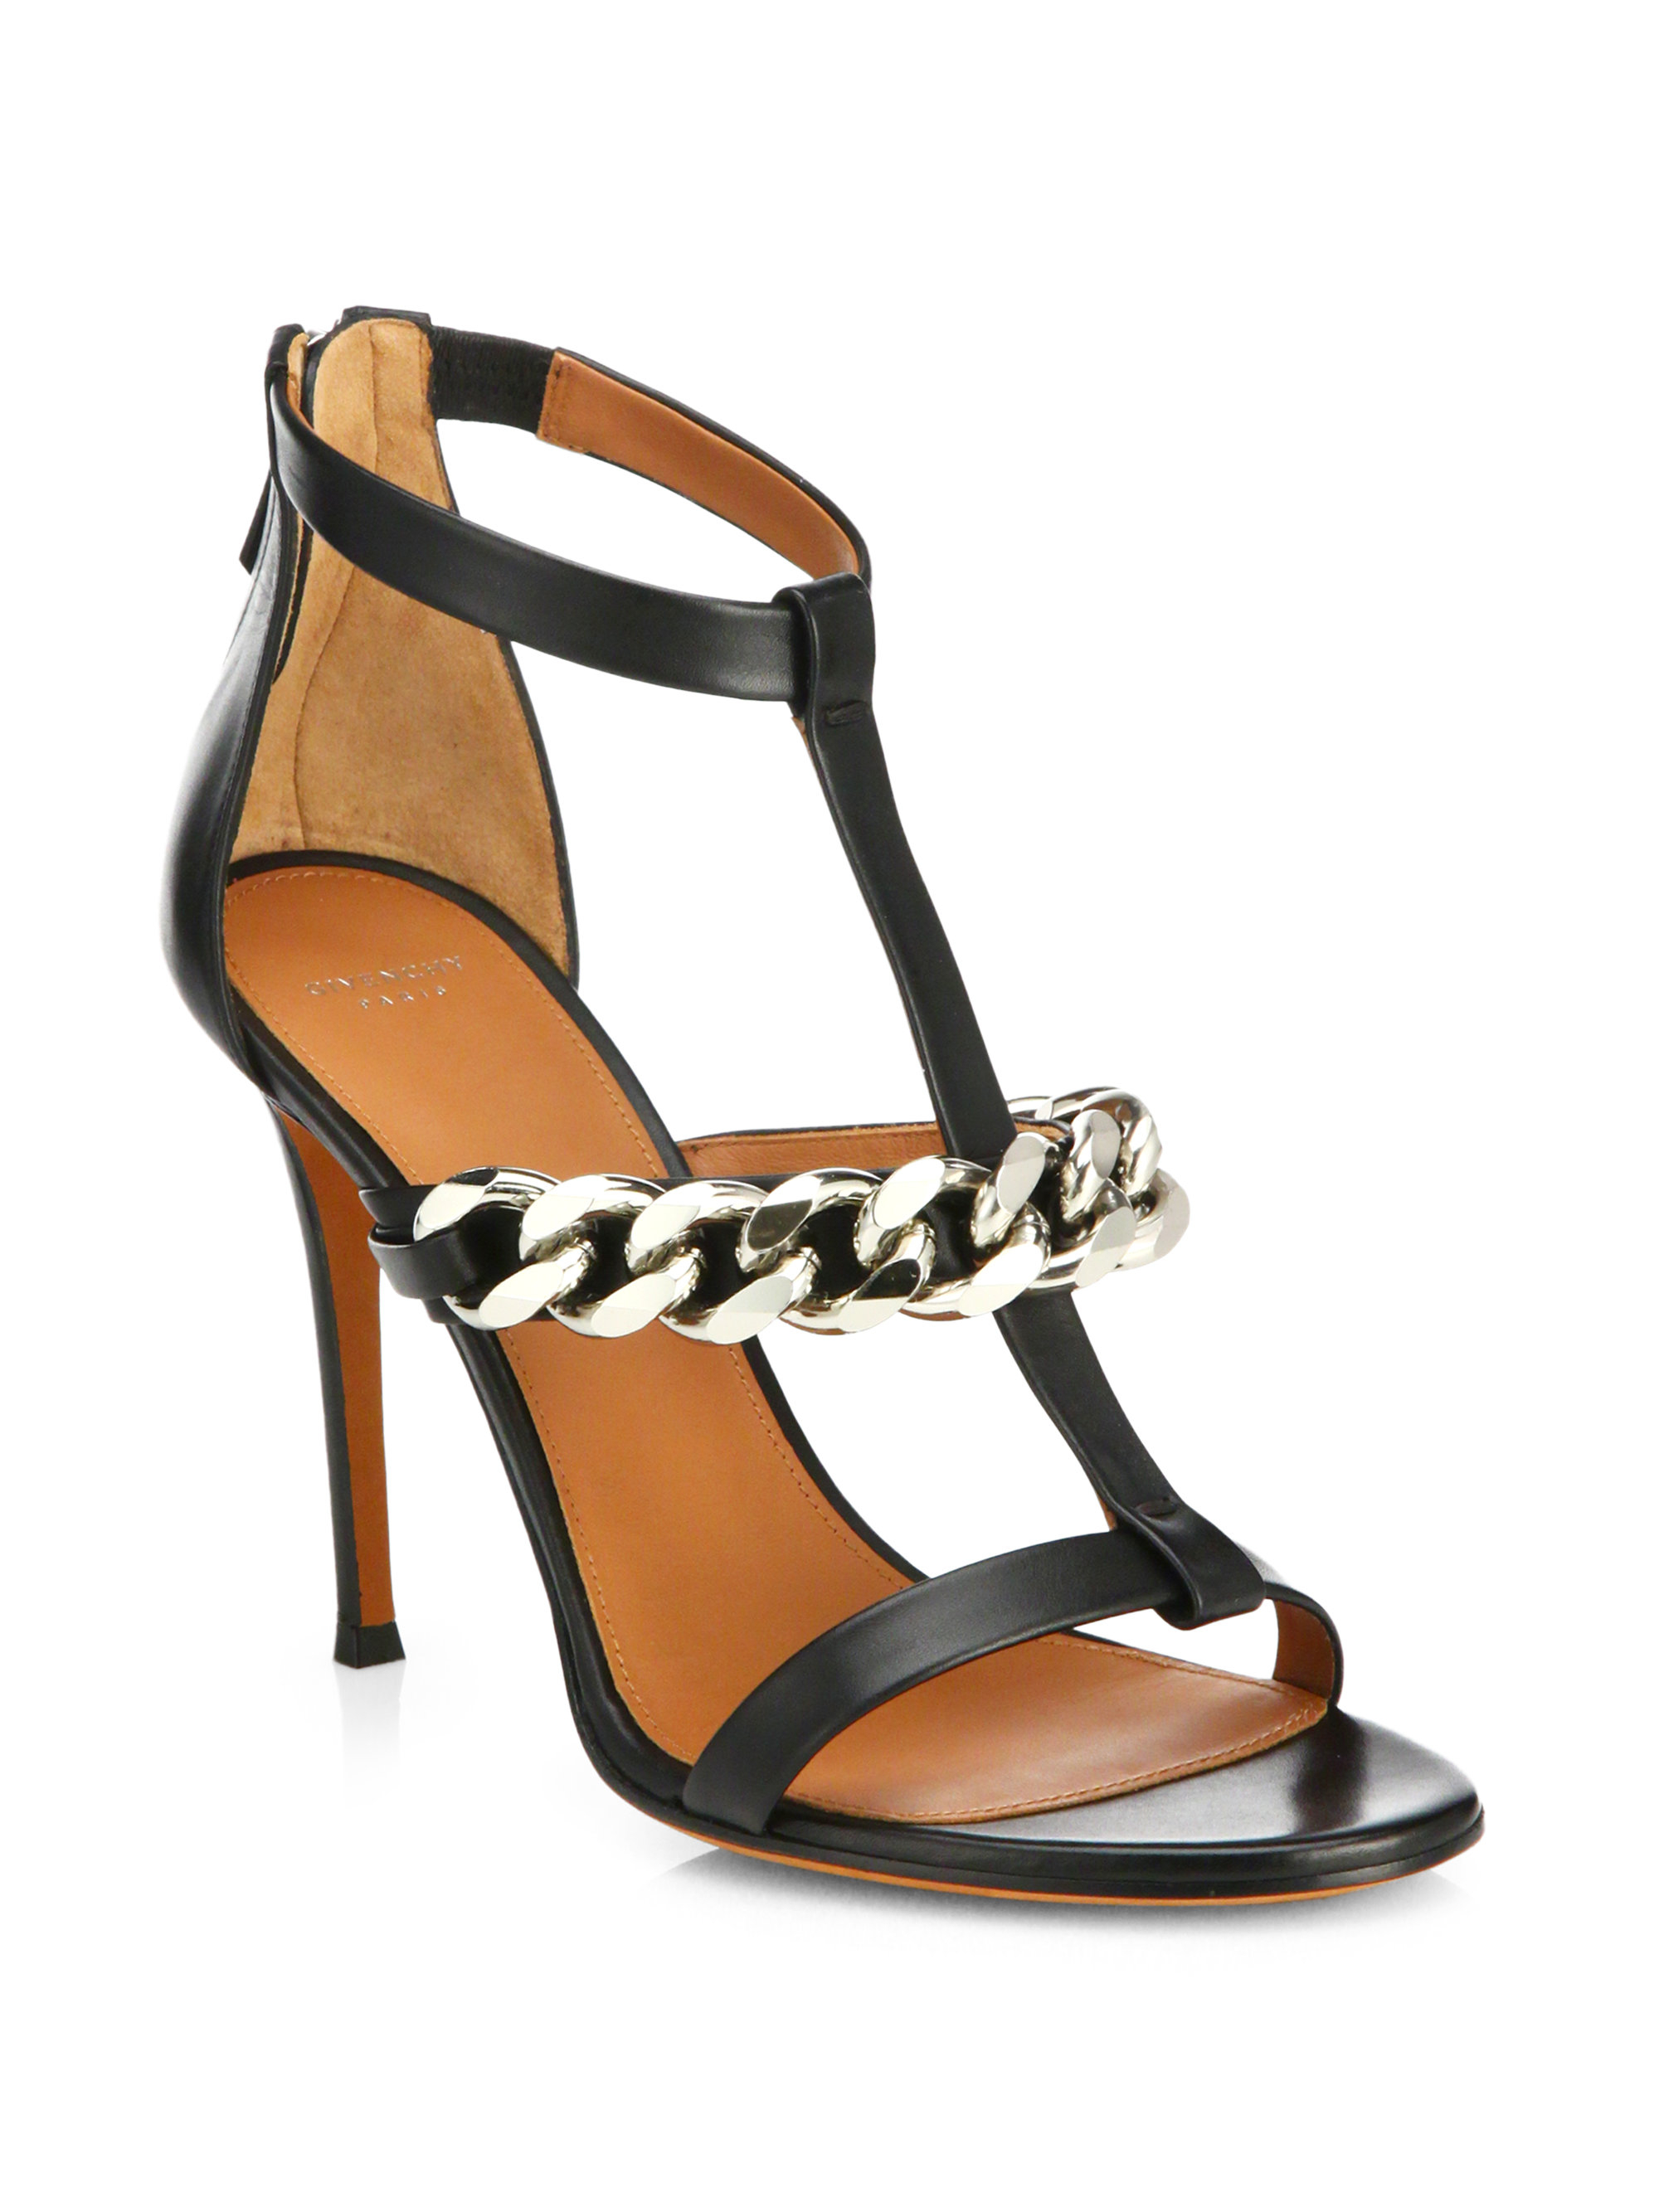 outlet store sale online with paypal for sale Givenchy Leather Woven Sandals free shipping wide range of amazon for sale y6Lo4fD